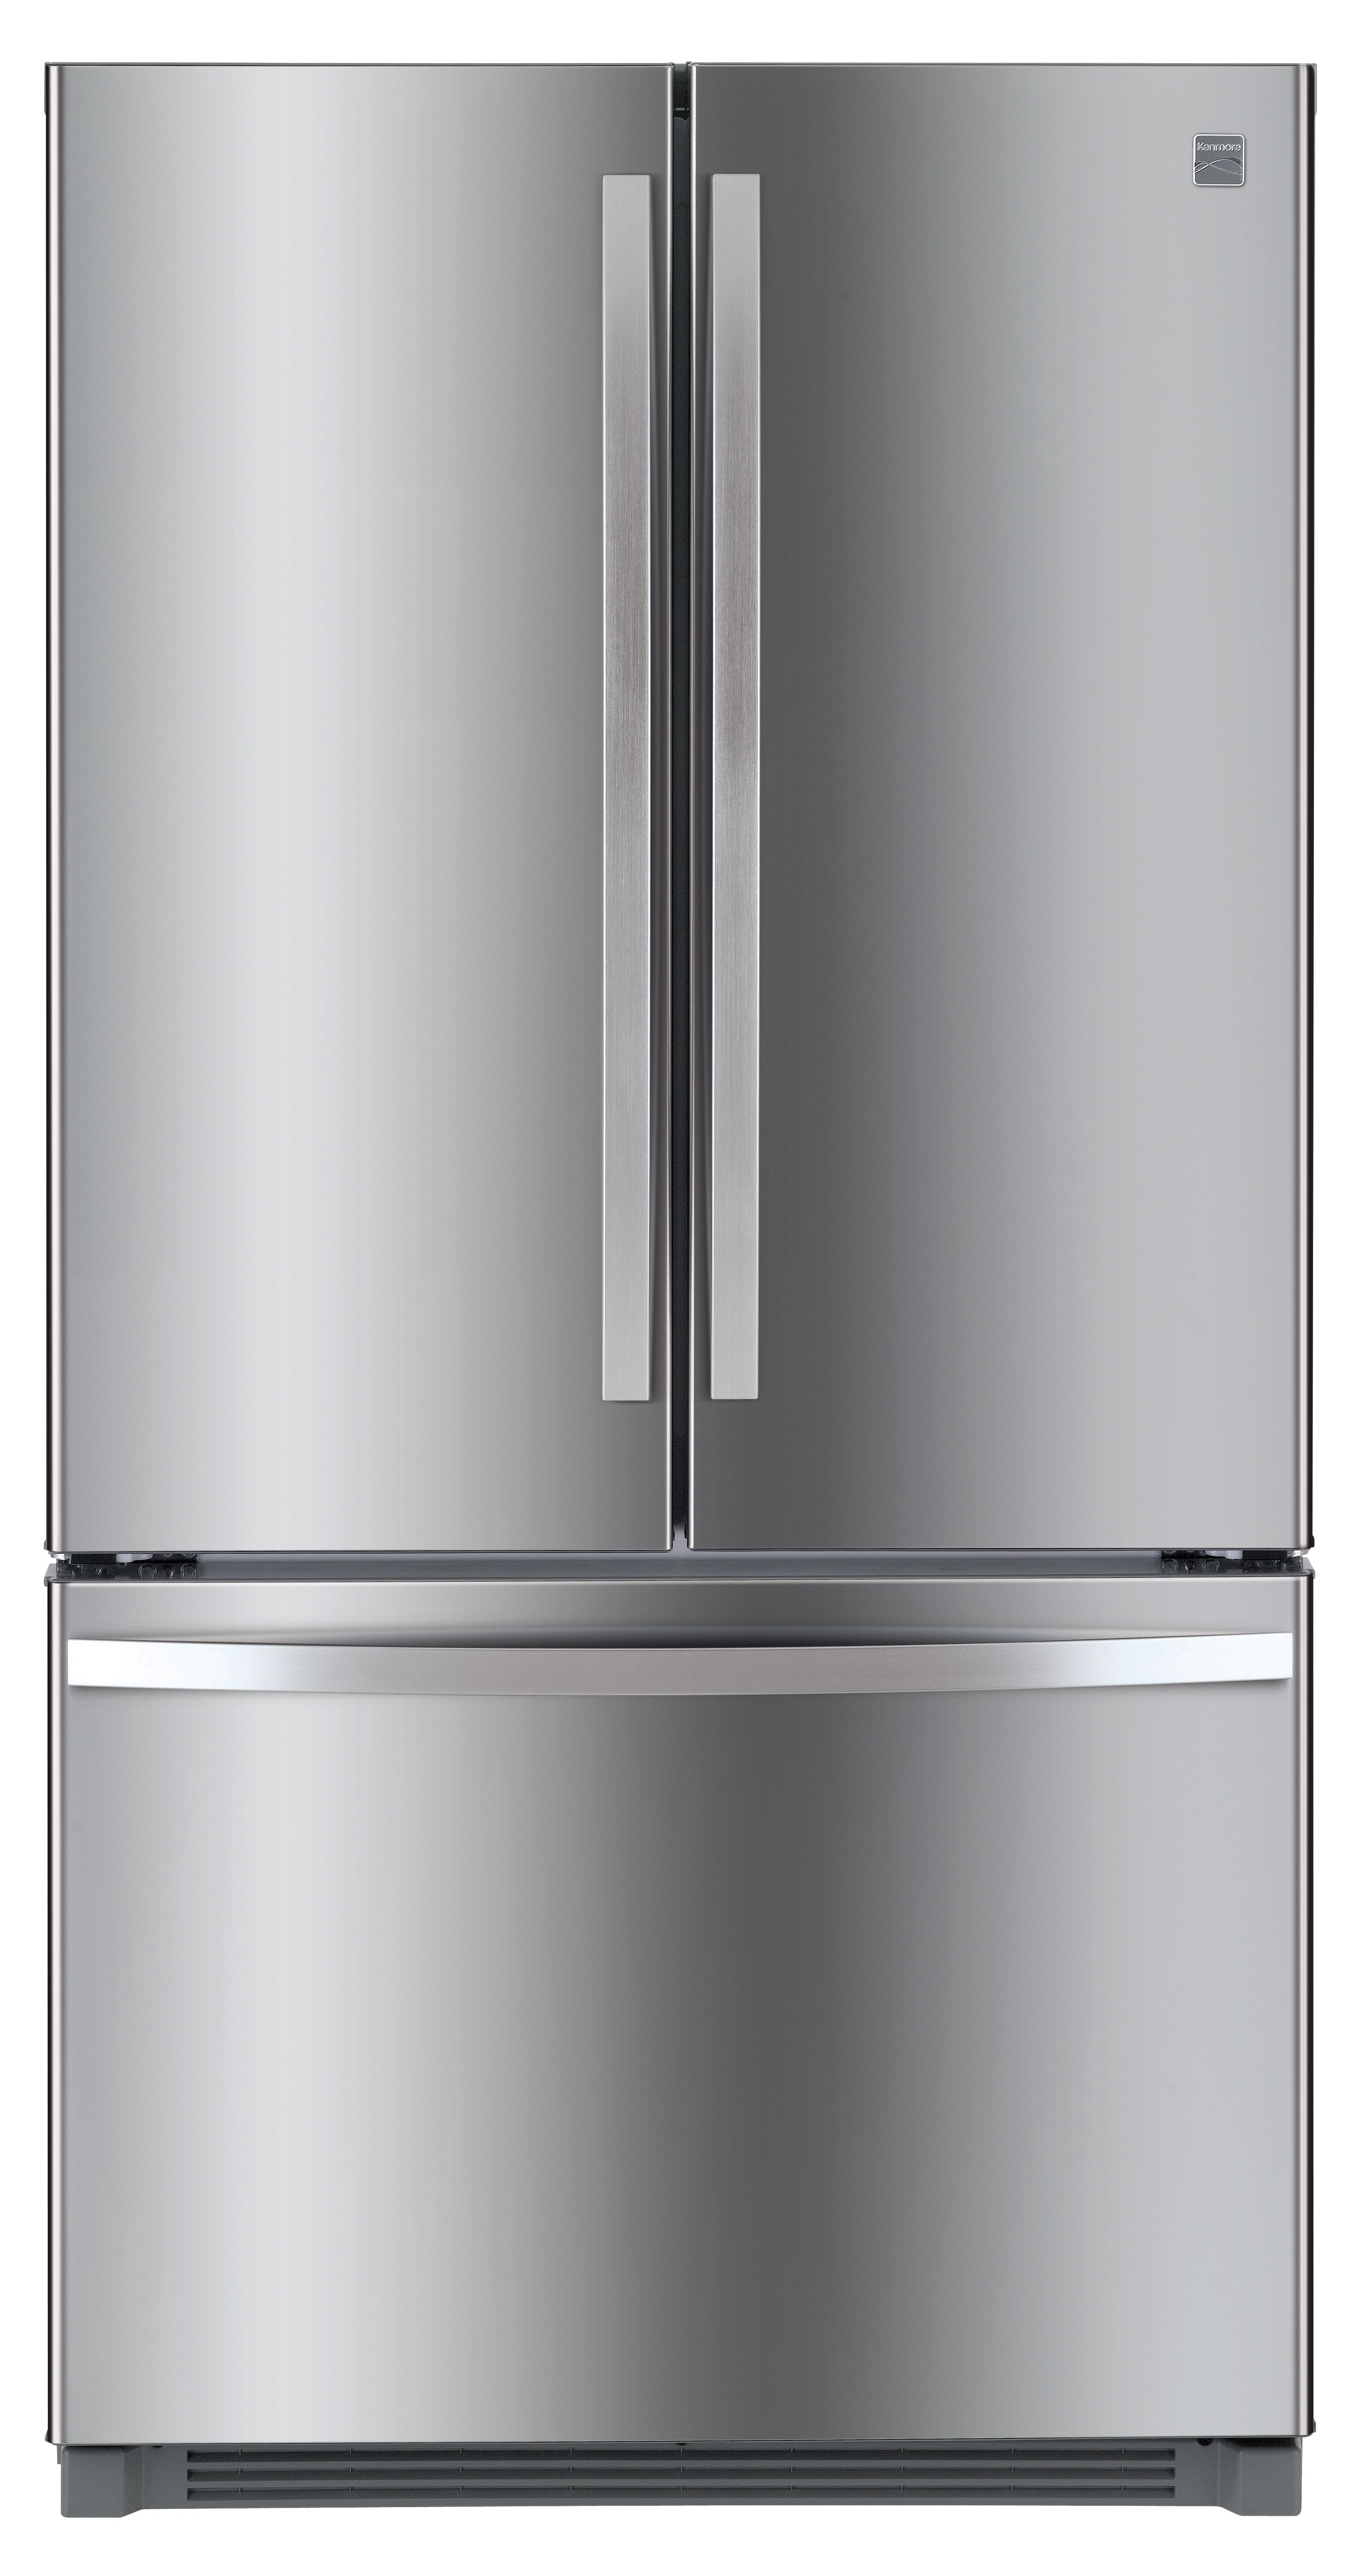 Kenmore 26 1 cu ft French Door Refrigerator Fingerprint